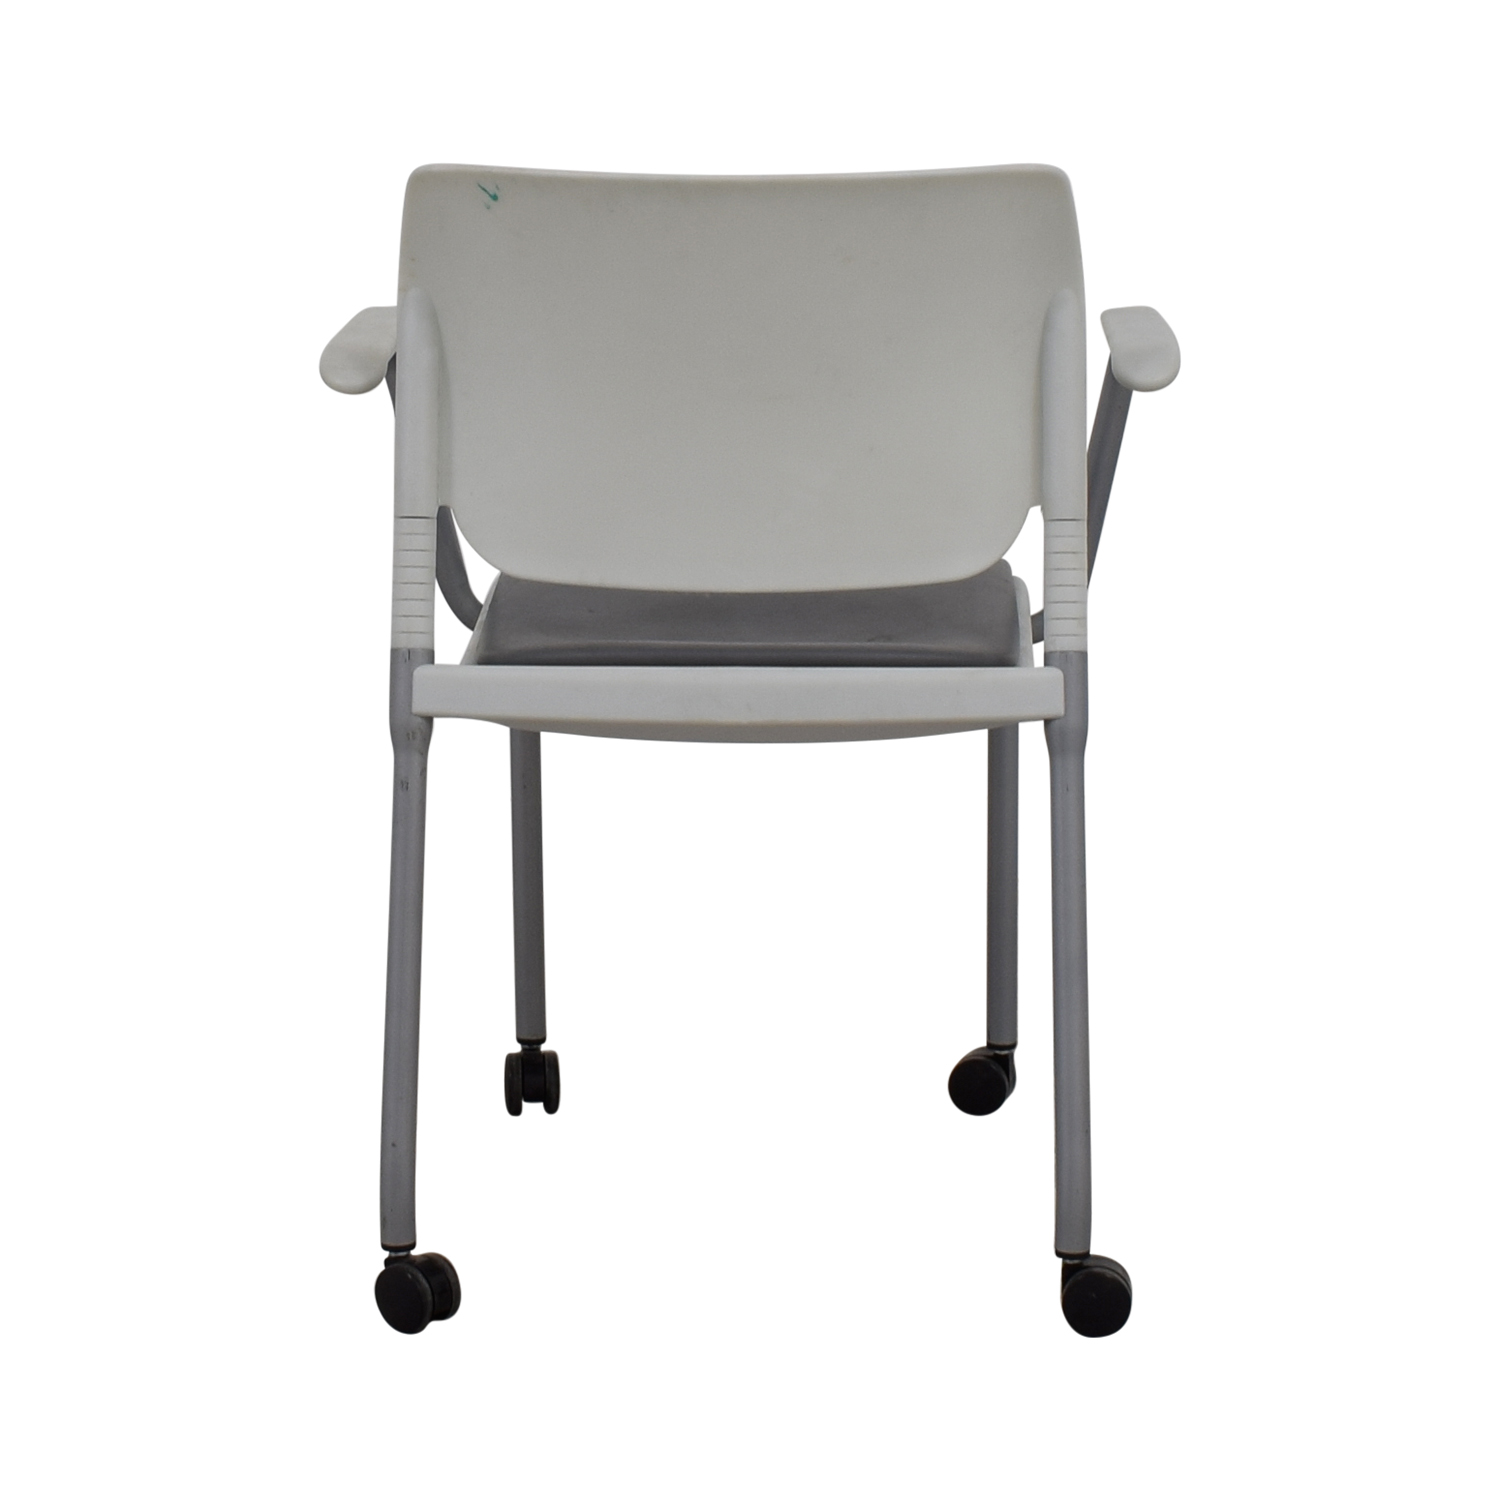 SitOnIt SitOnIt White and Grey Side Chair on Castors dimensions